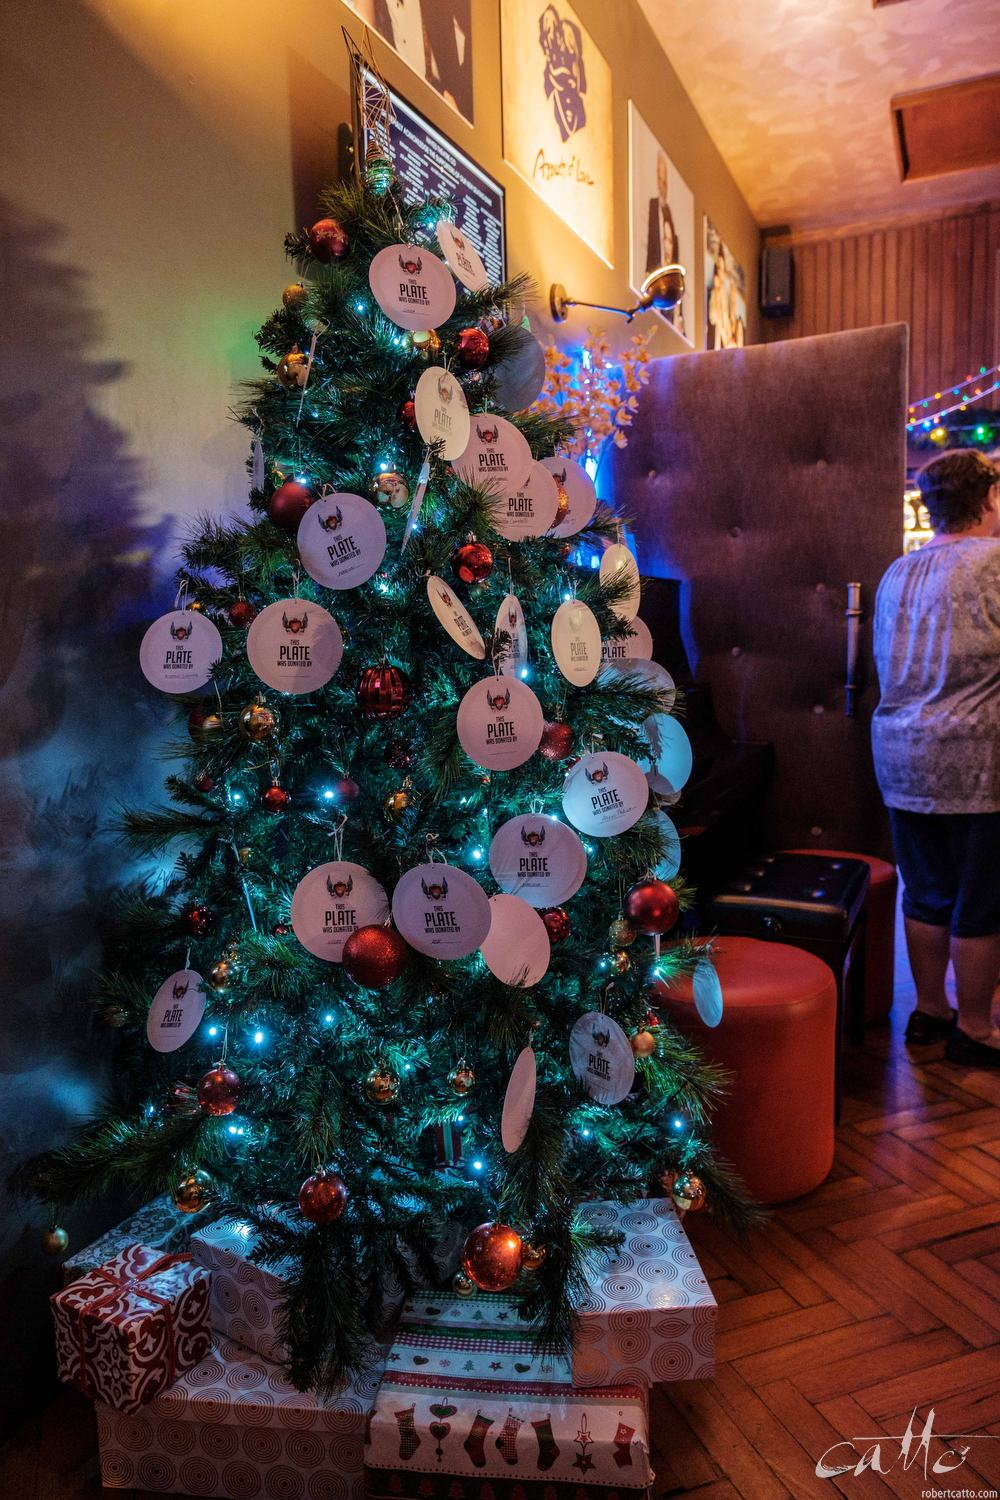 Plates representing donations to the Wayside Chapel from audience members overwhelming the Christmas Tree in the lobby at the Hayes Theatre.